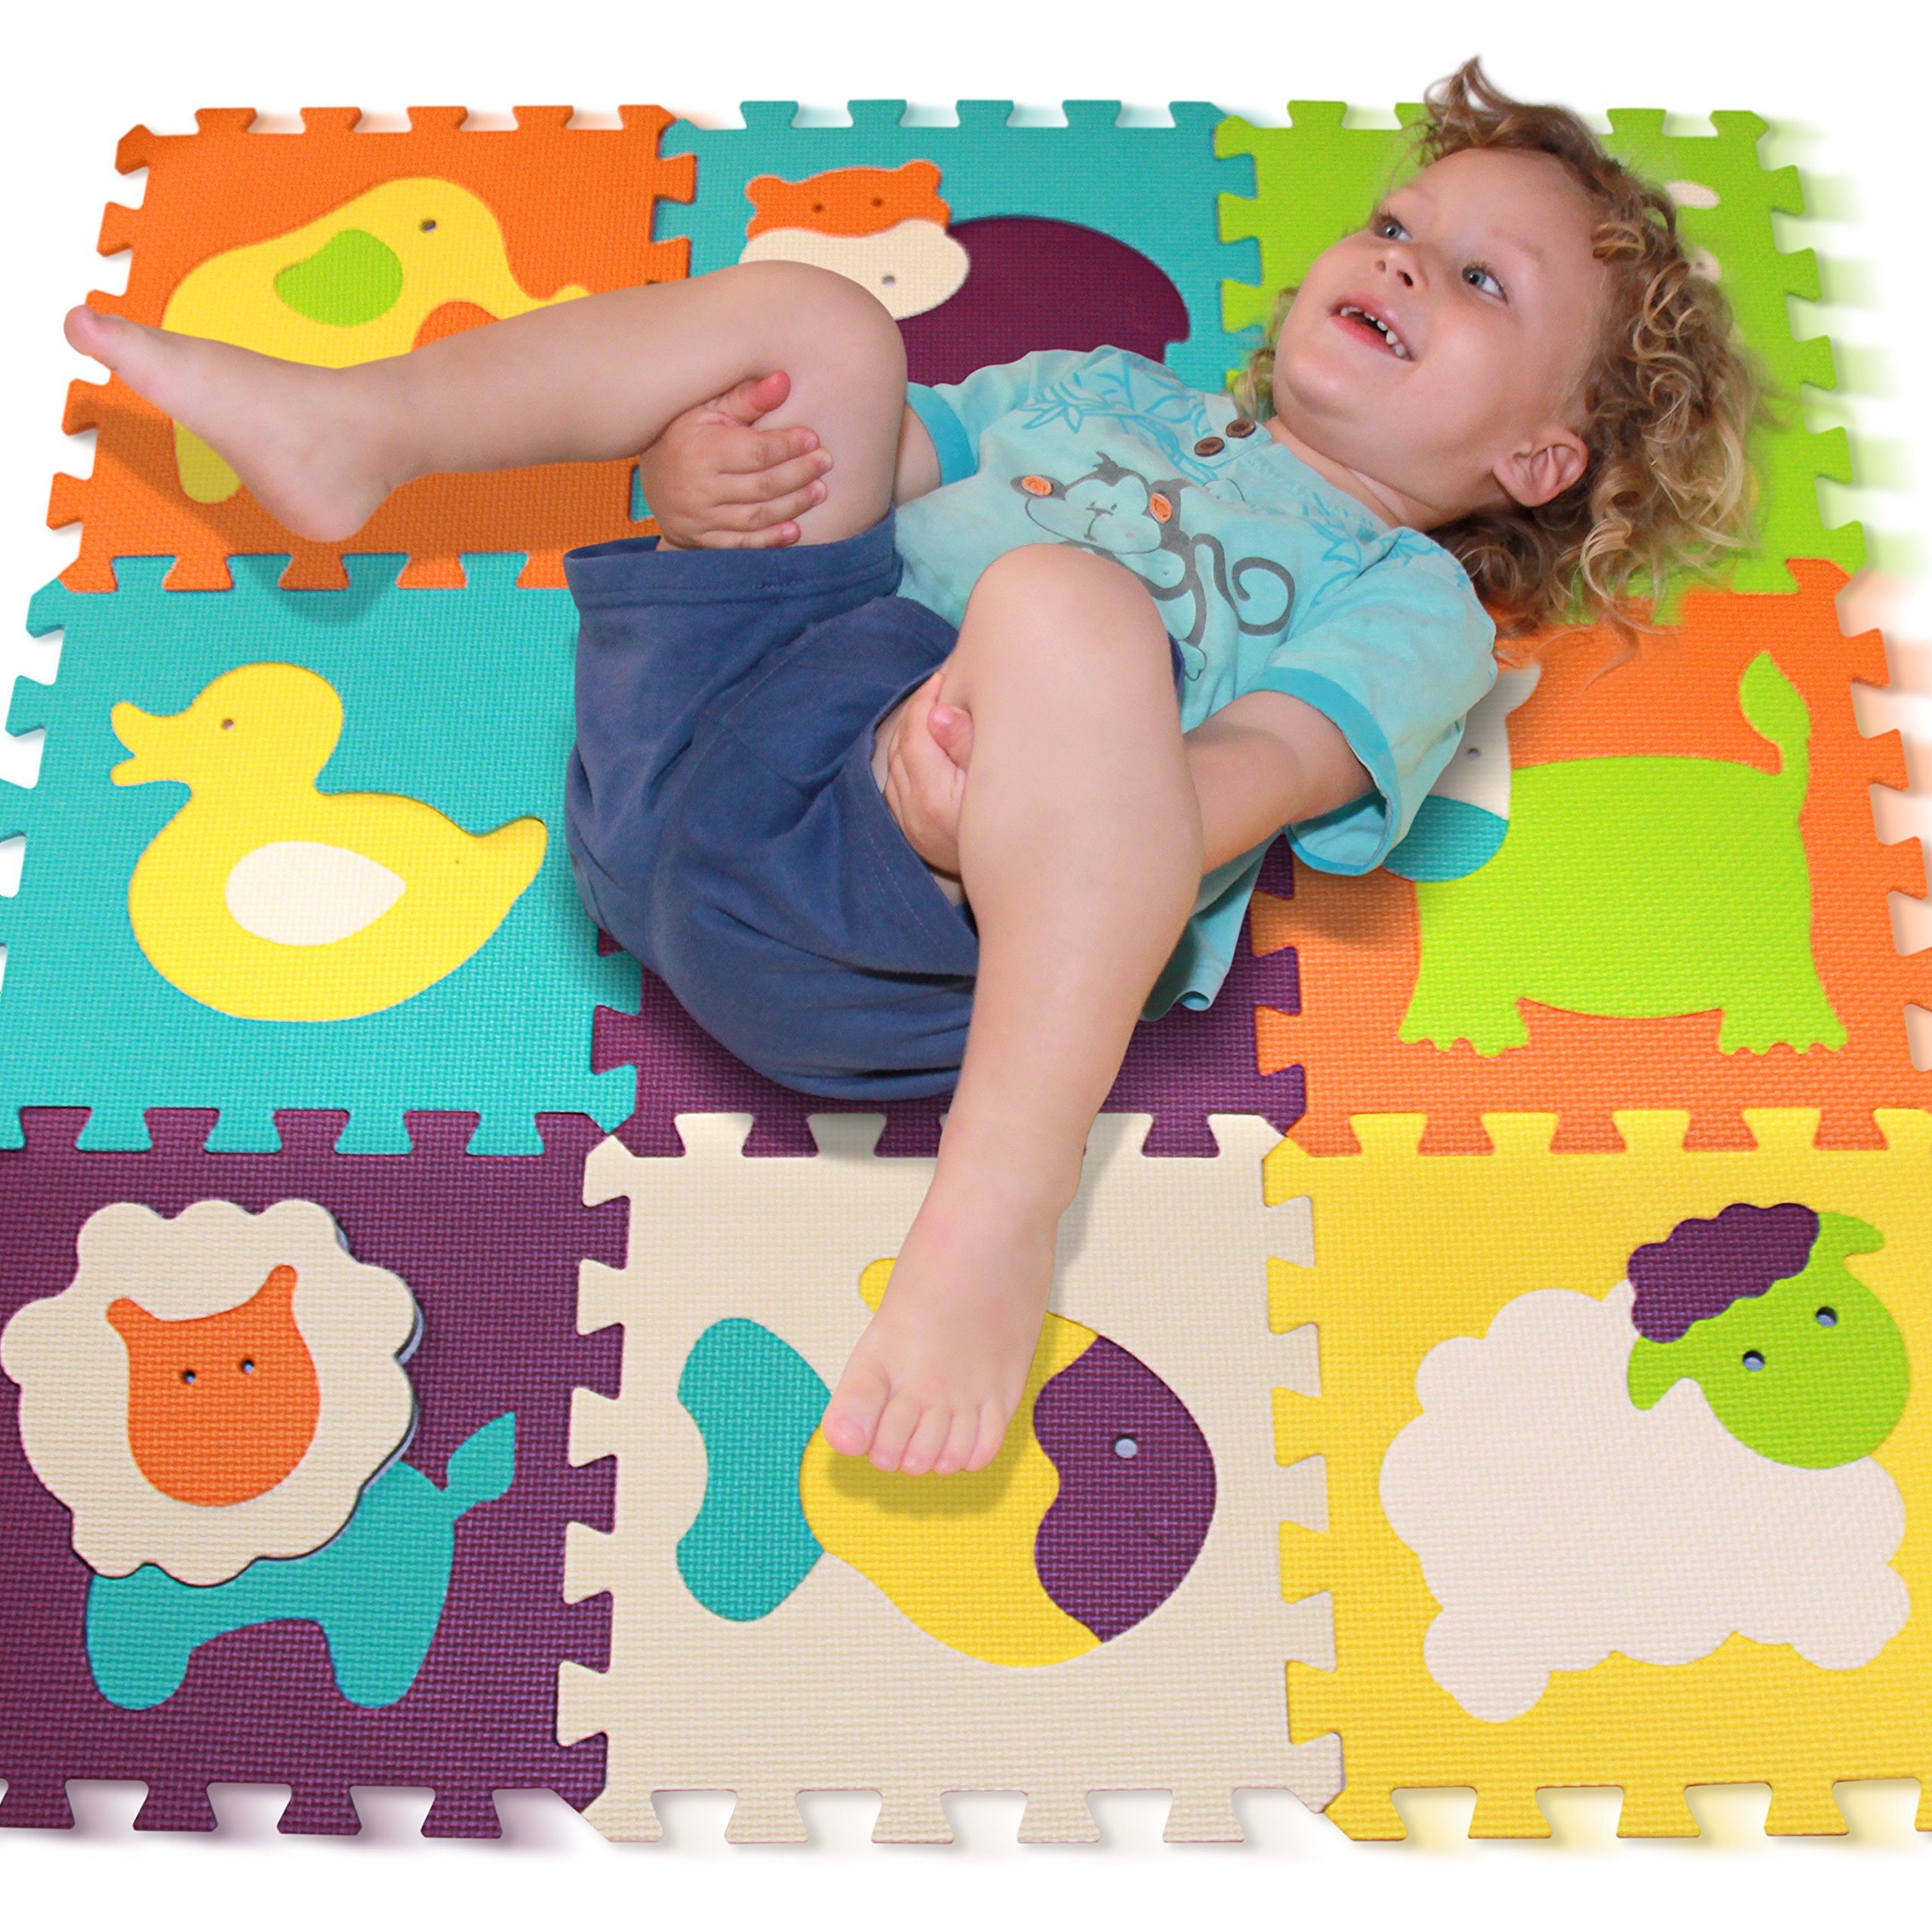 for kids detail plastic visual effect tiles liquid colorful dramatic on mats floor product mat buy with